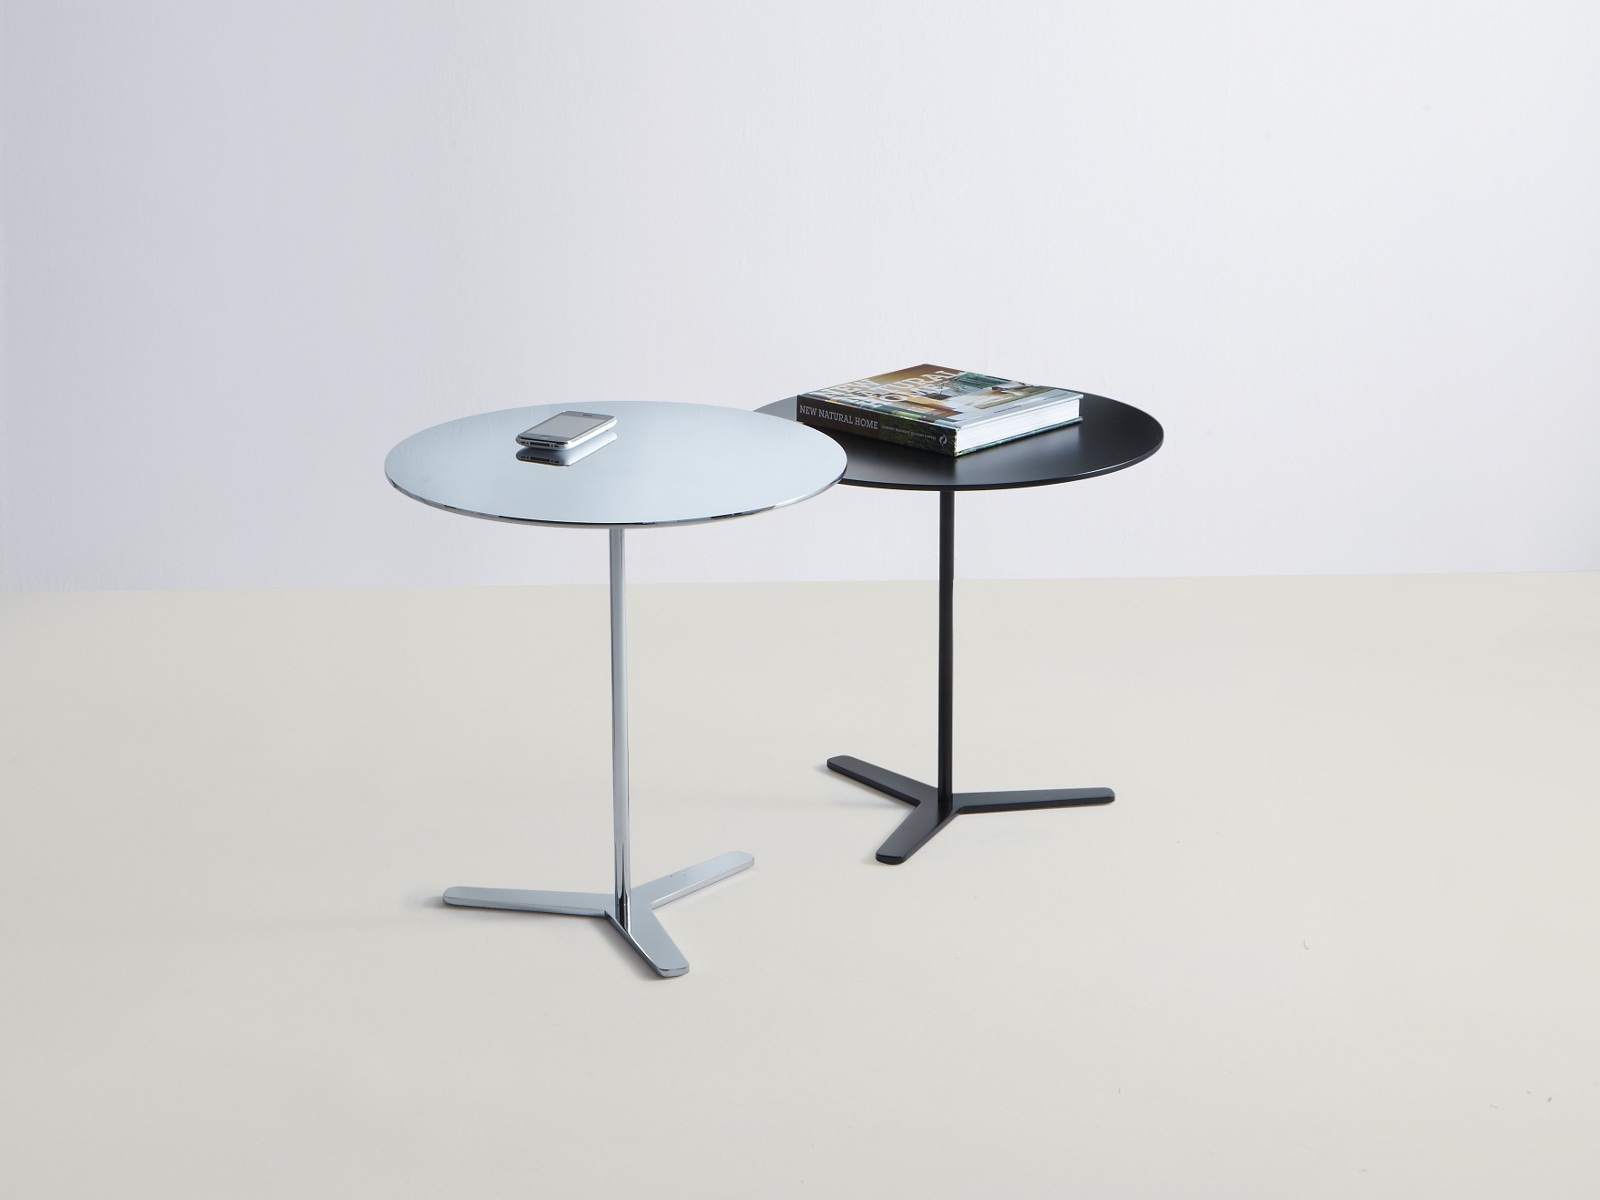 Round Mdf Coffee Table Tre By Mox Design Charles O Job